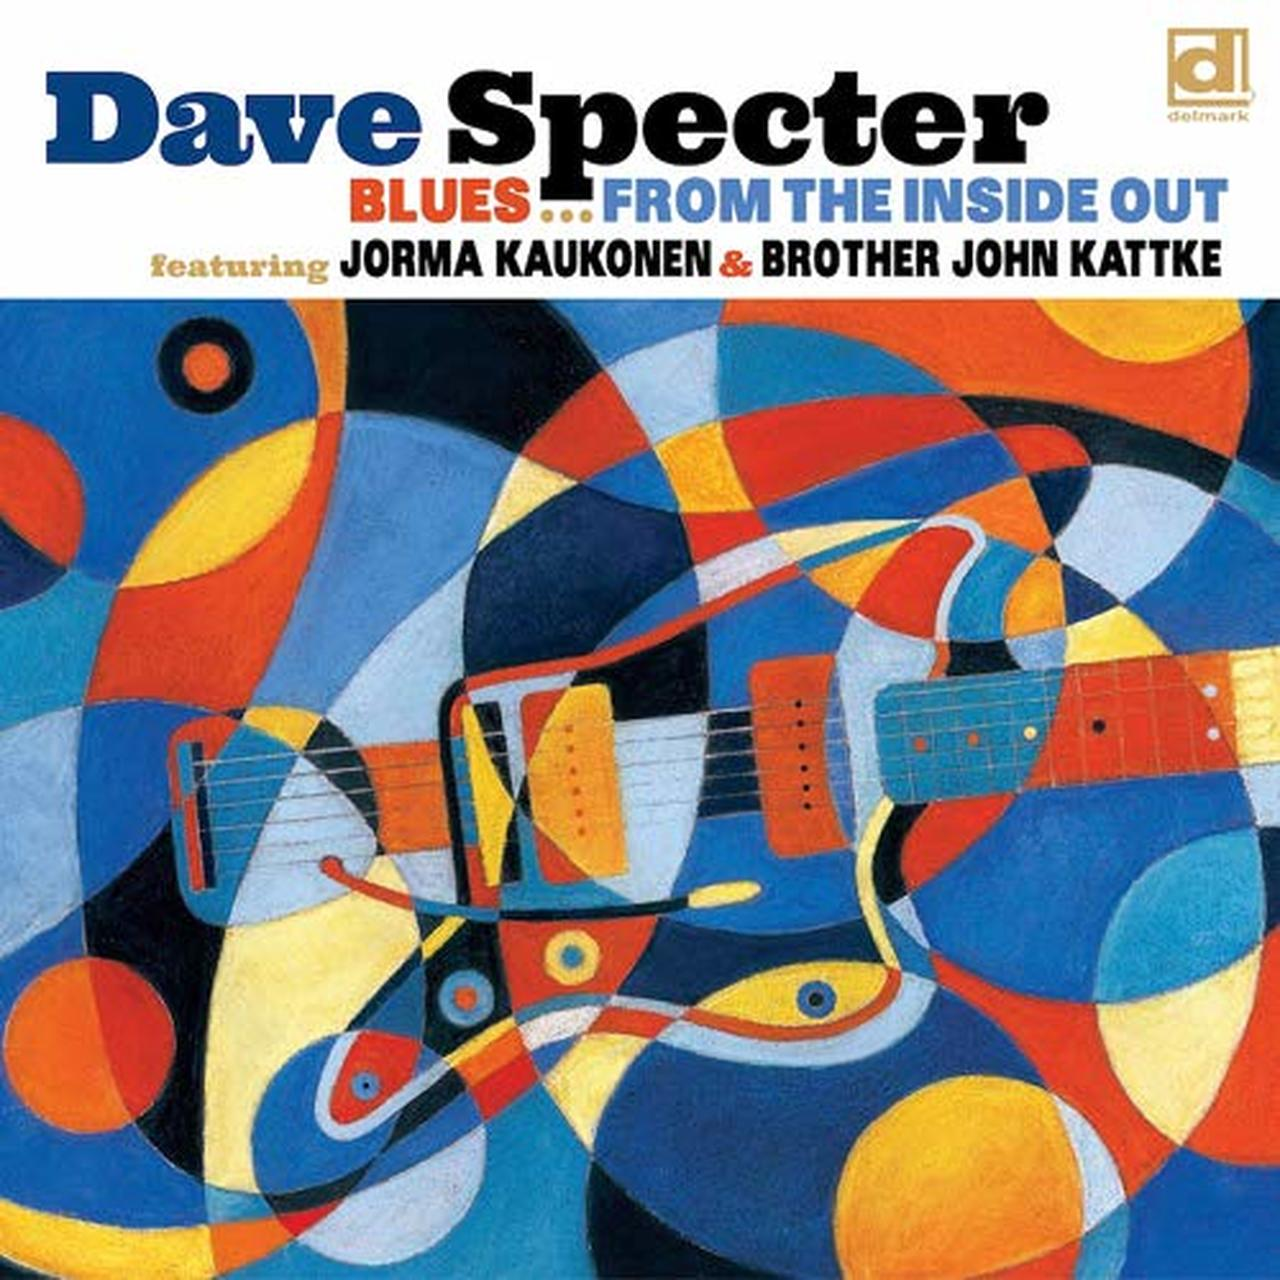 DAVE SPECTER - Blues From the Inside Out cover